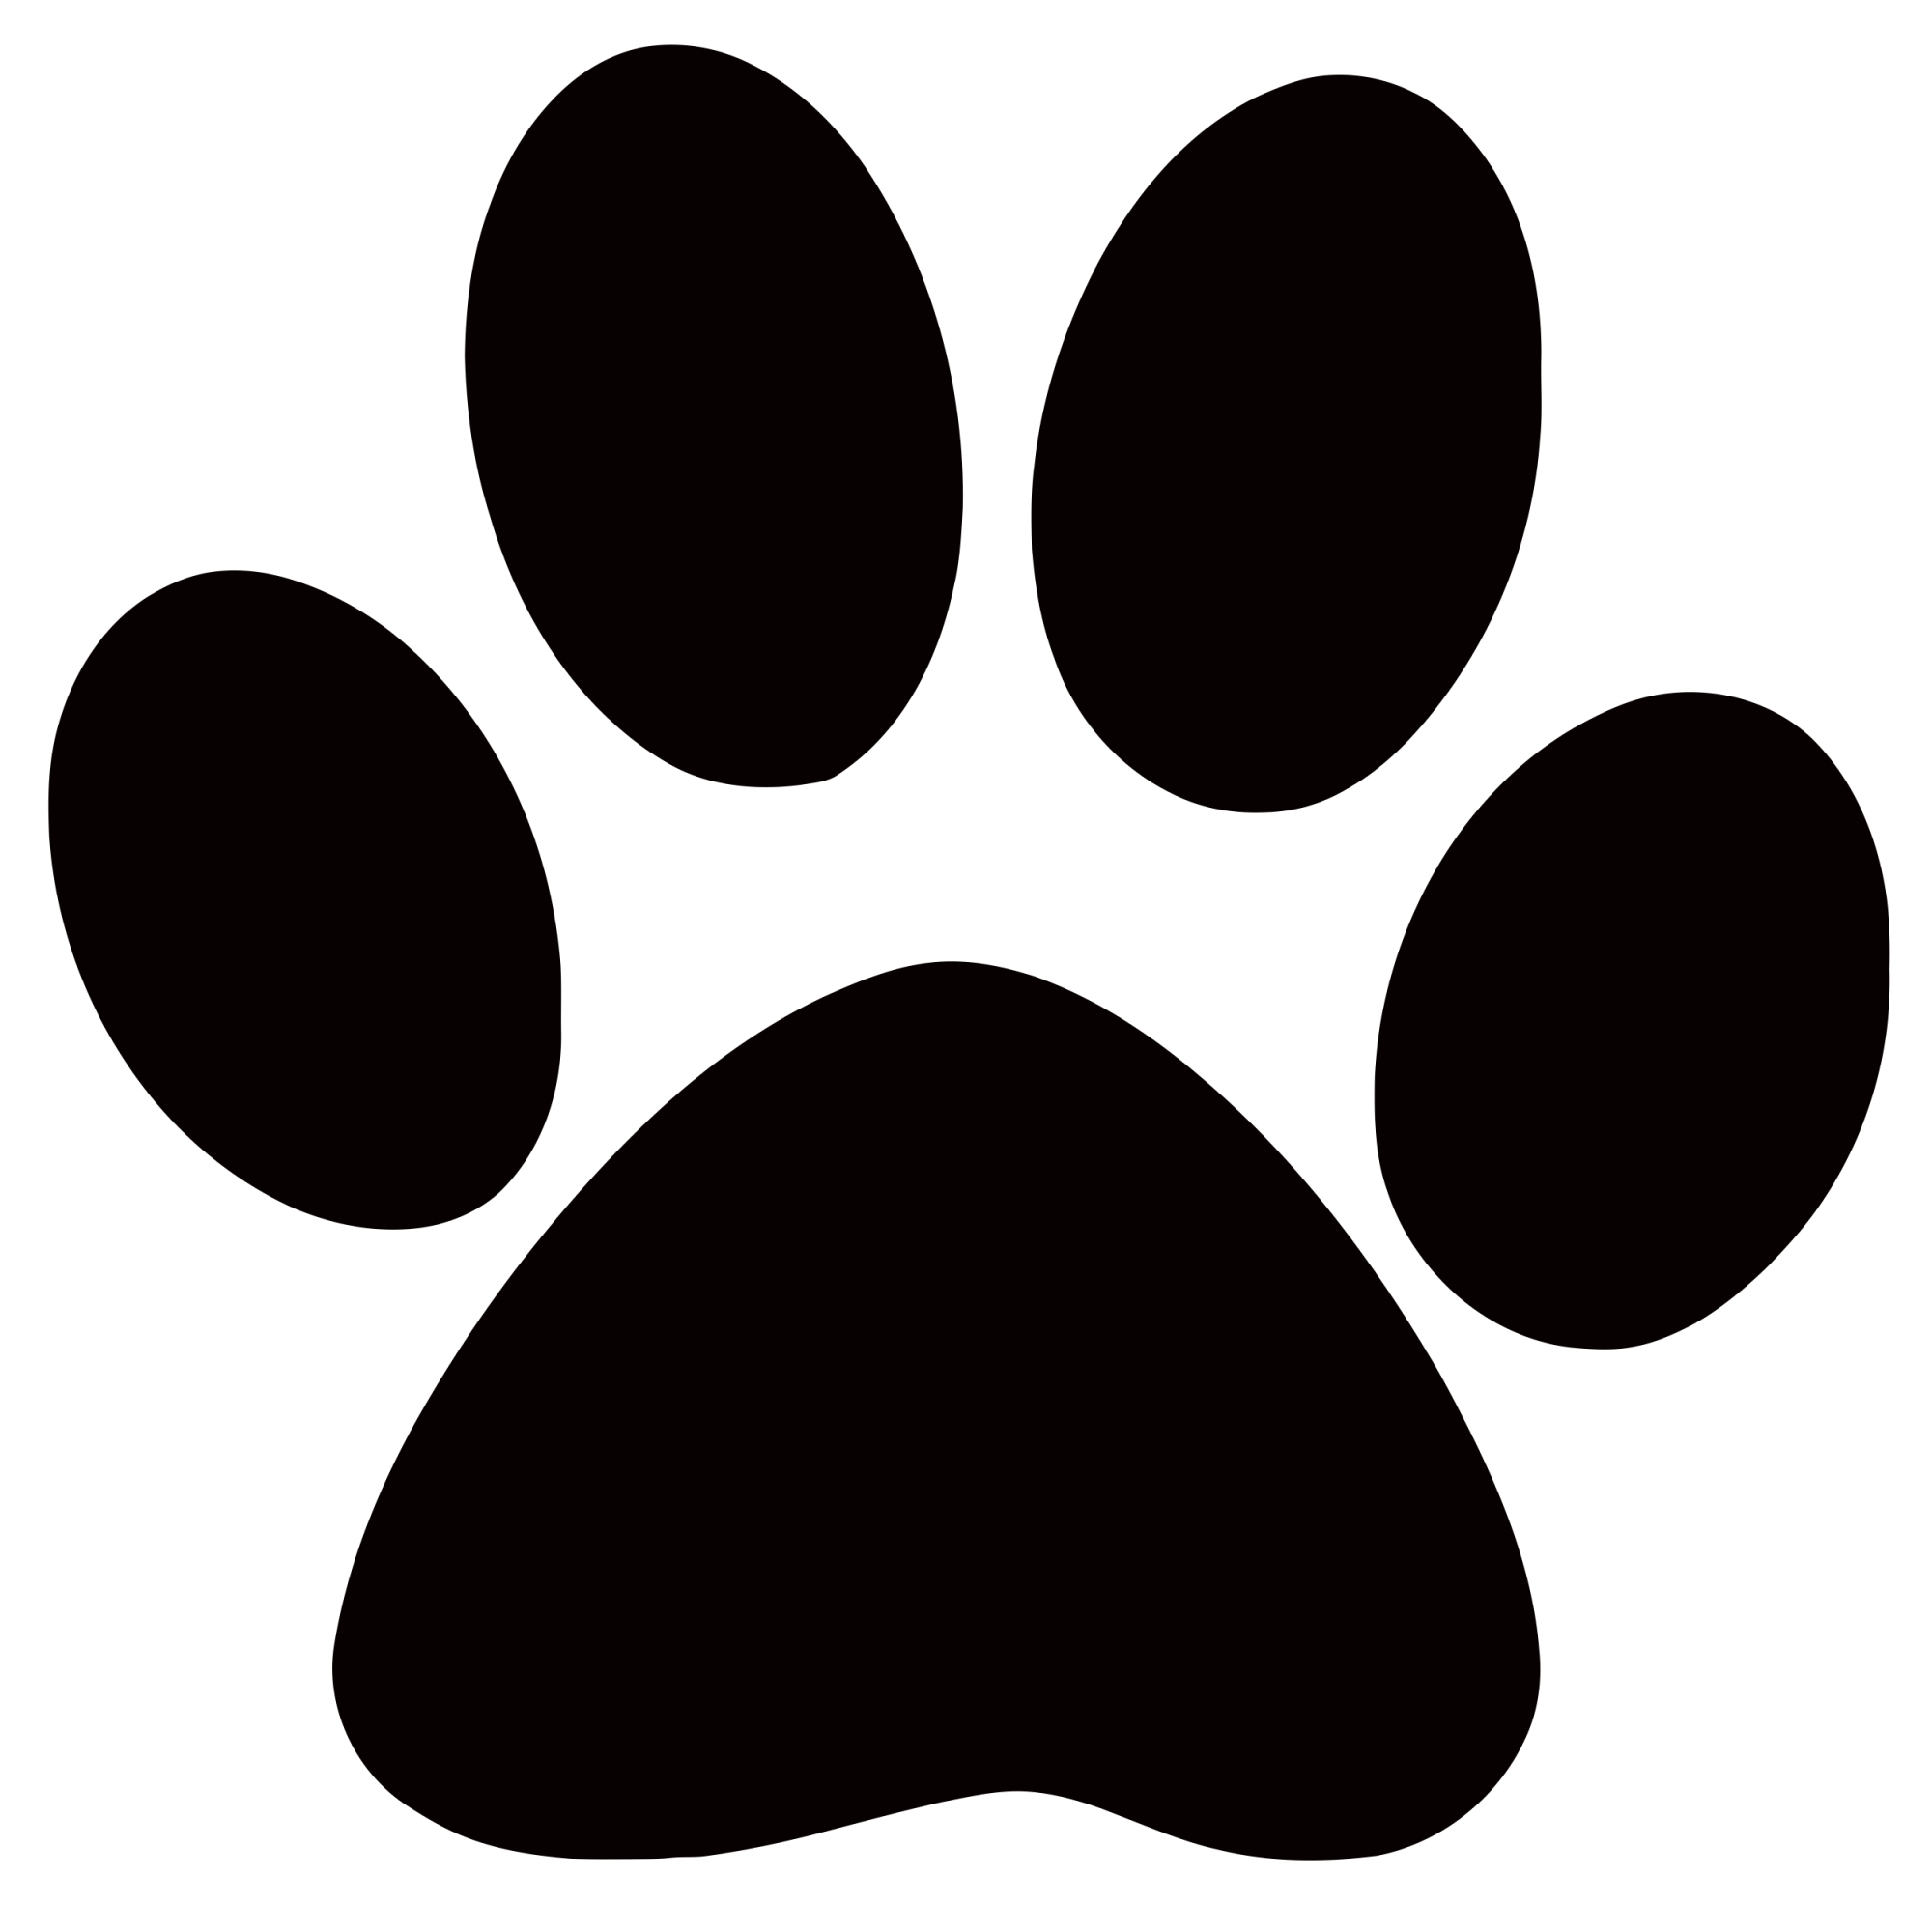 hight resolution of dog paw prints panther paw print clip art clipart locker